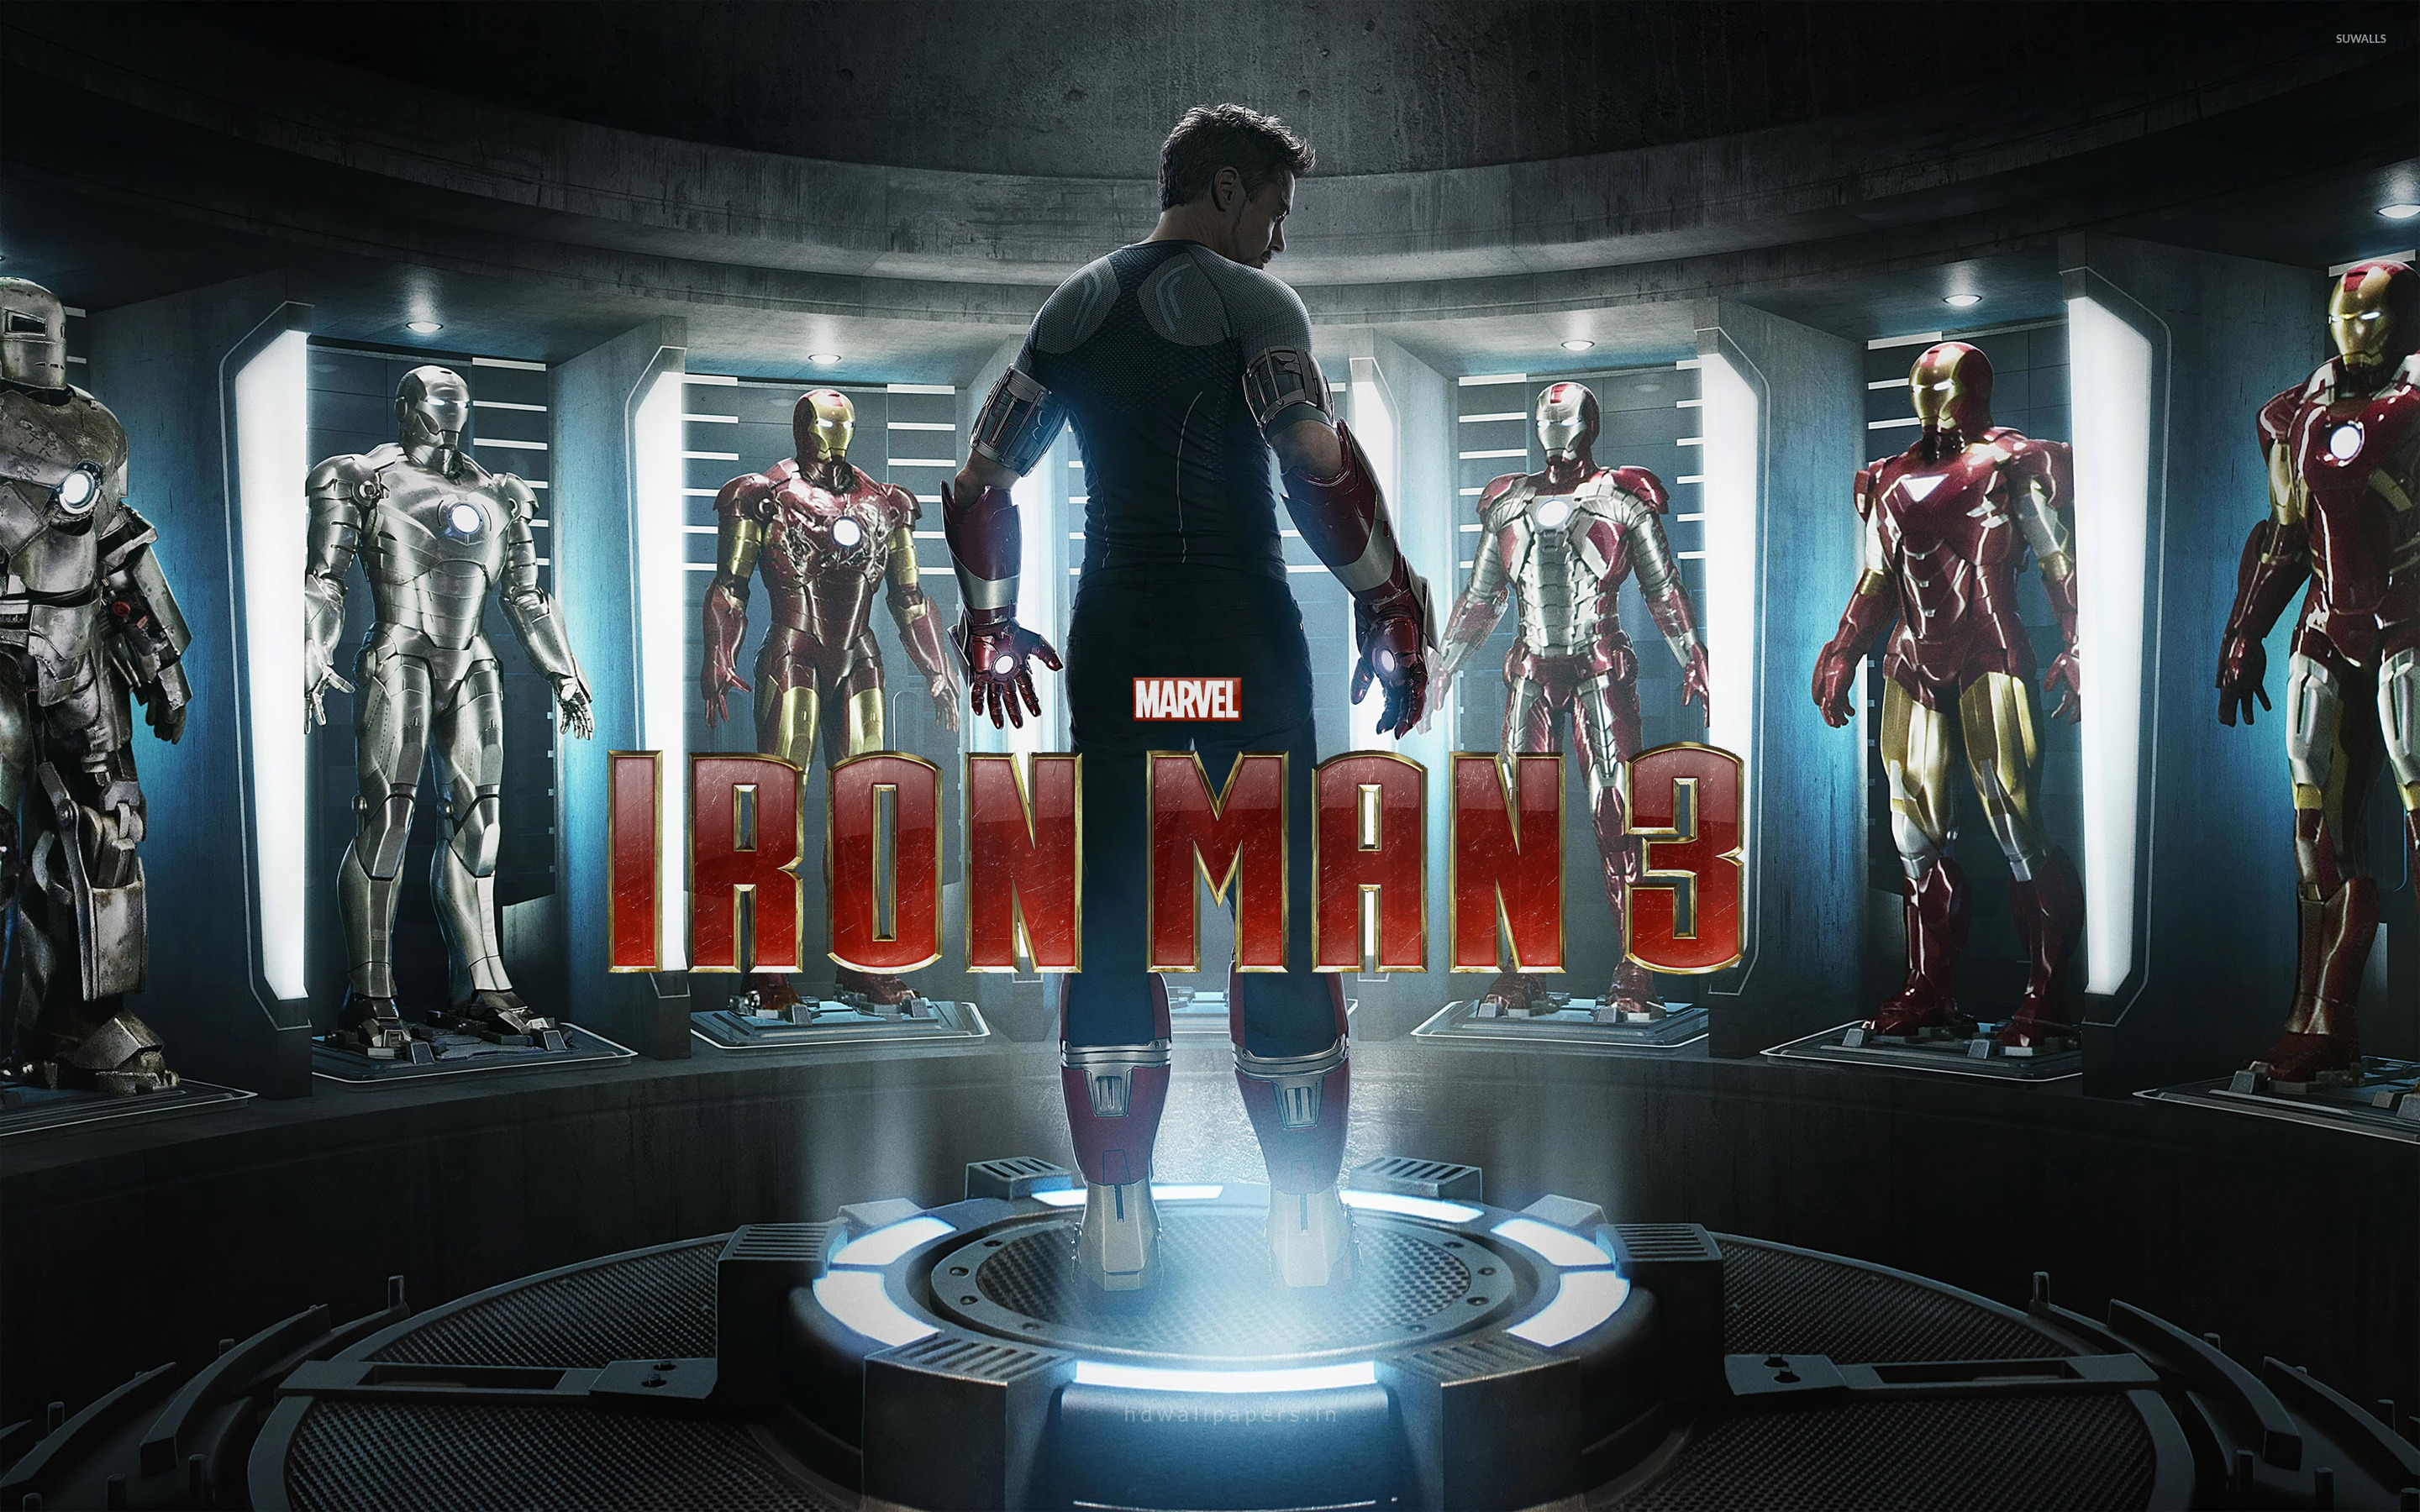 iron man 3 [3] wallpaper - movie wallpapers - #18154